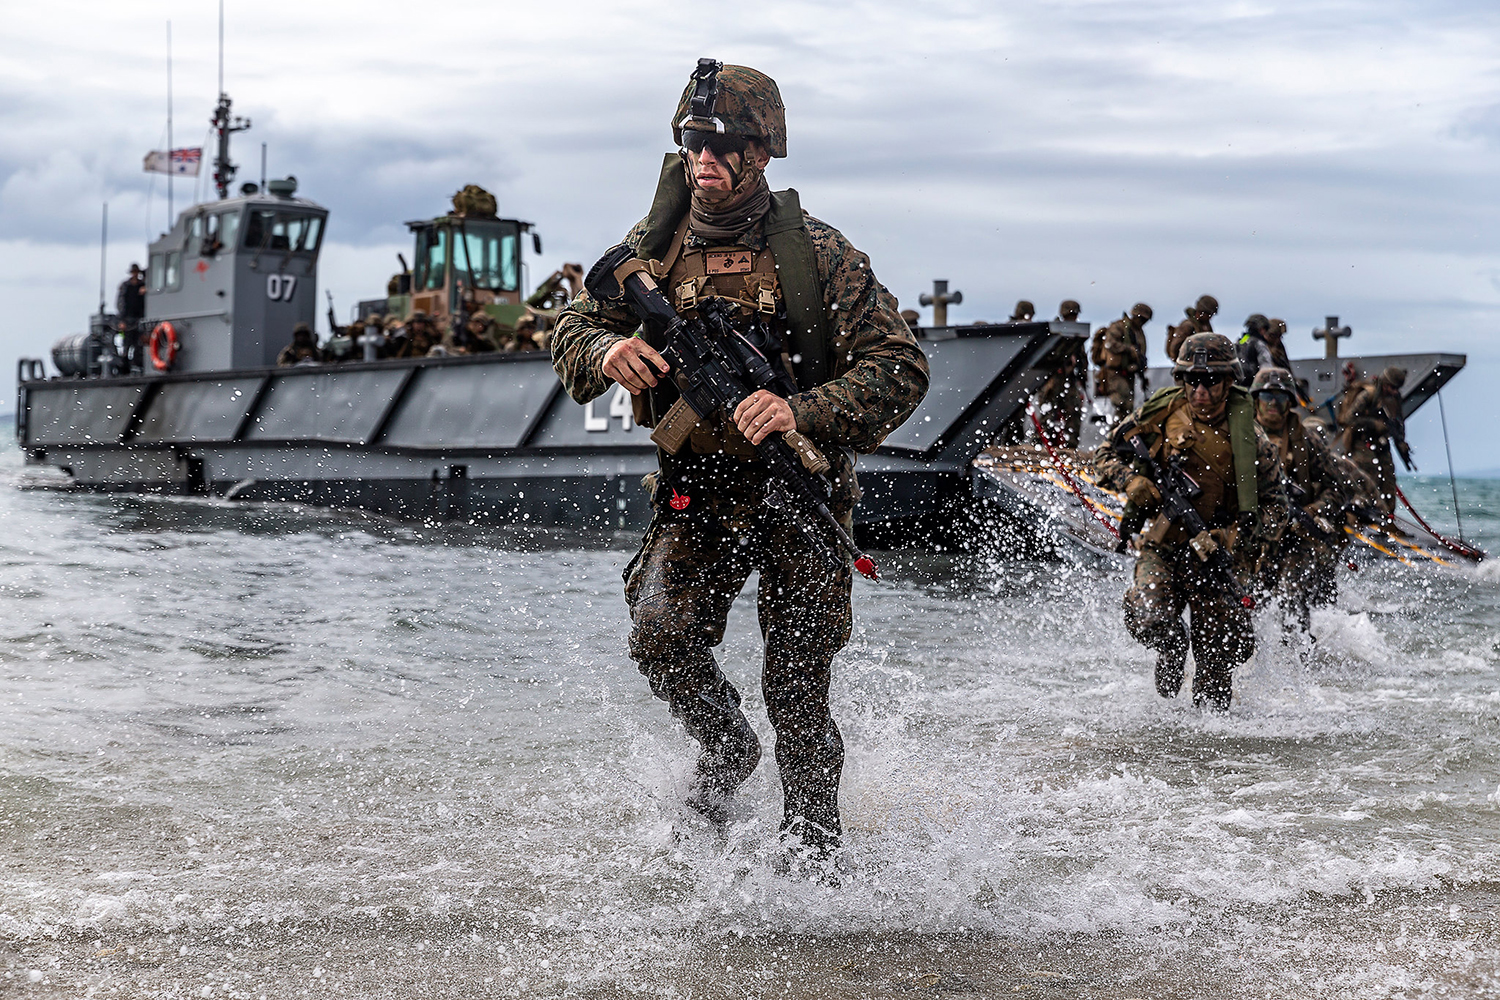 U.S. Marines conduct a simulated amphibious assault of exercise during Talisman Sabre 19 in Bowen, Australia, July 22, 2019. (Lance Cpl. Tanner D. Lambert/Marine Corps)